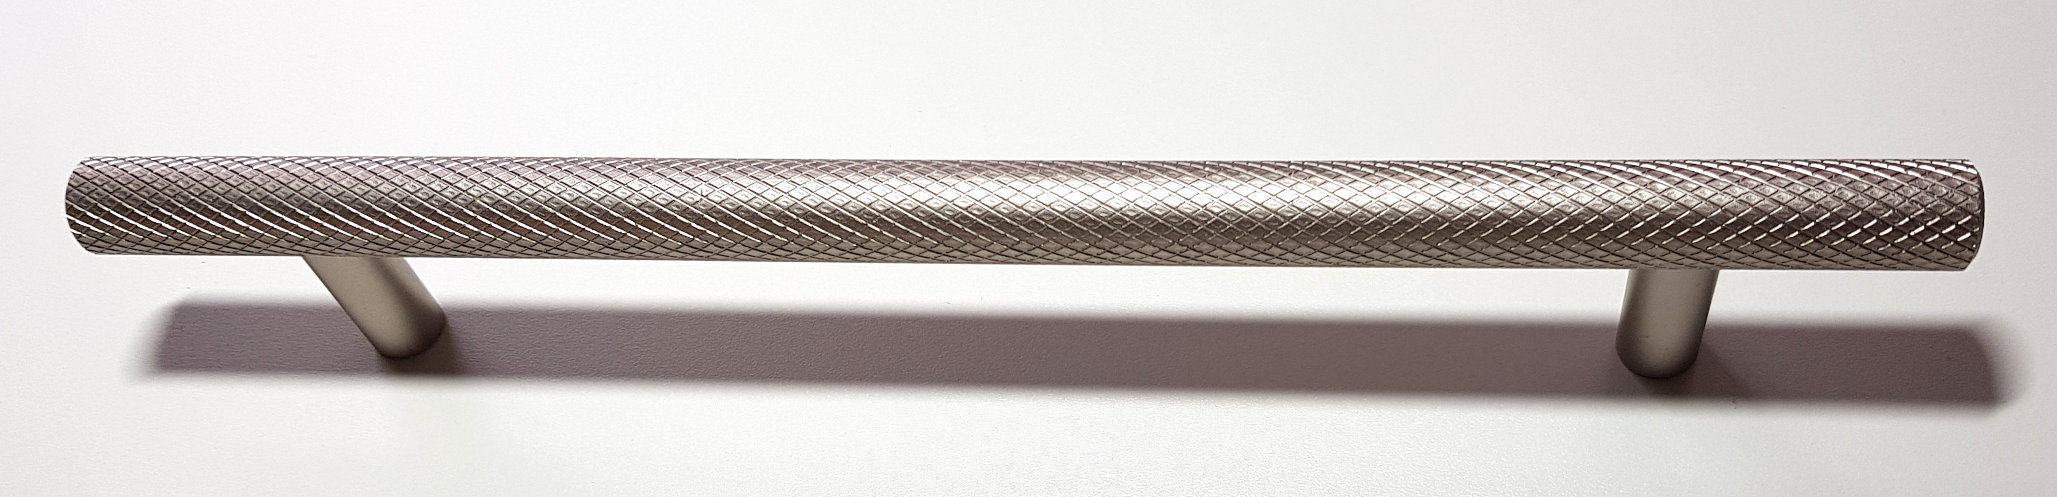 STAINLESS STEEL KNURLED HANDLE 220MM (160MM CENTRES)